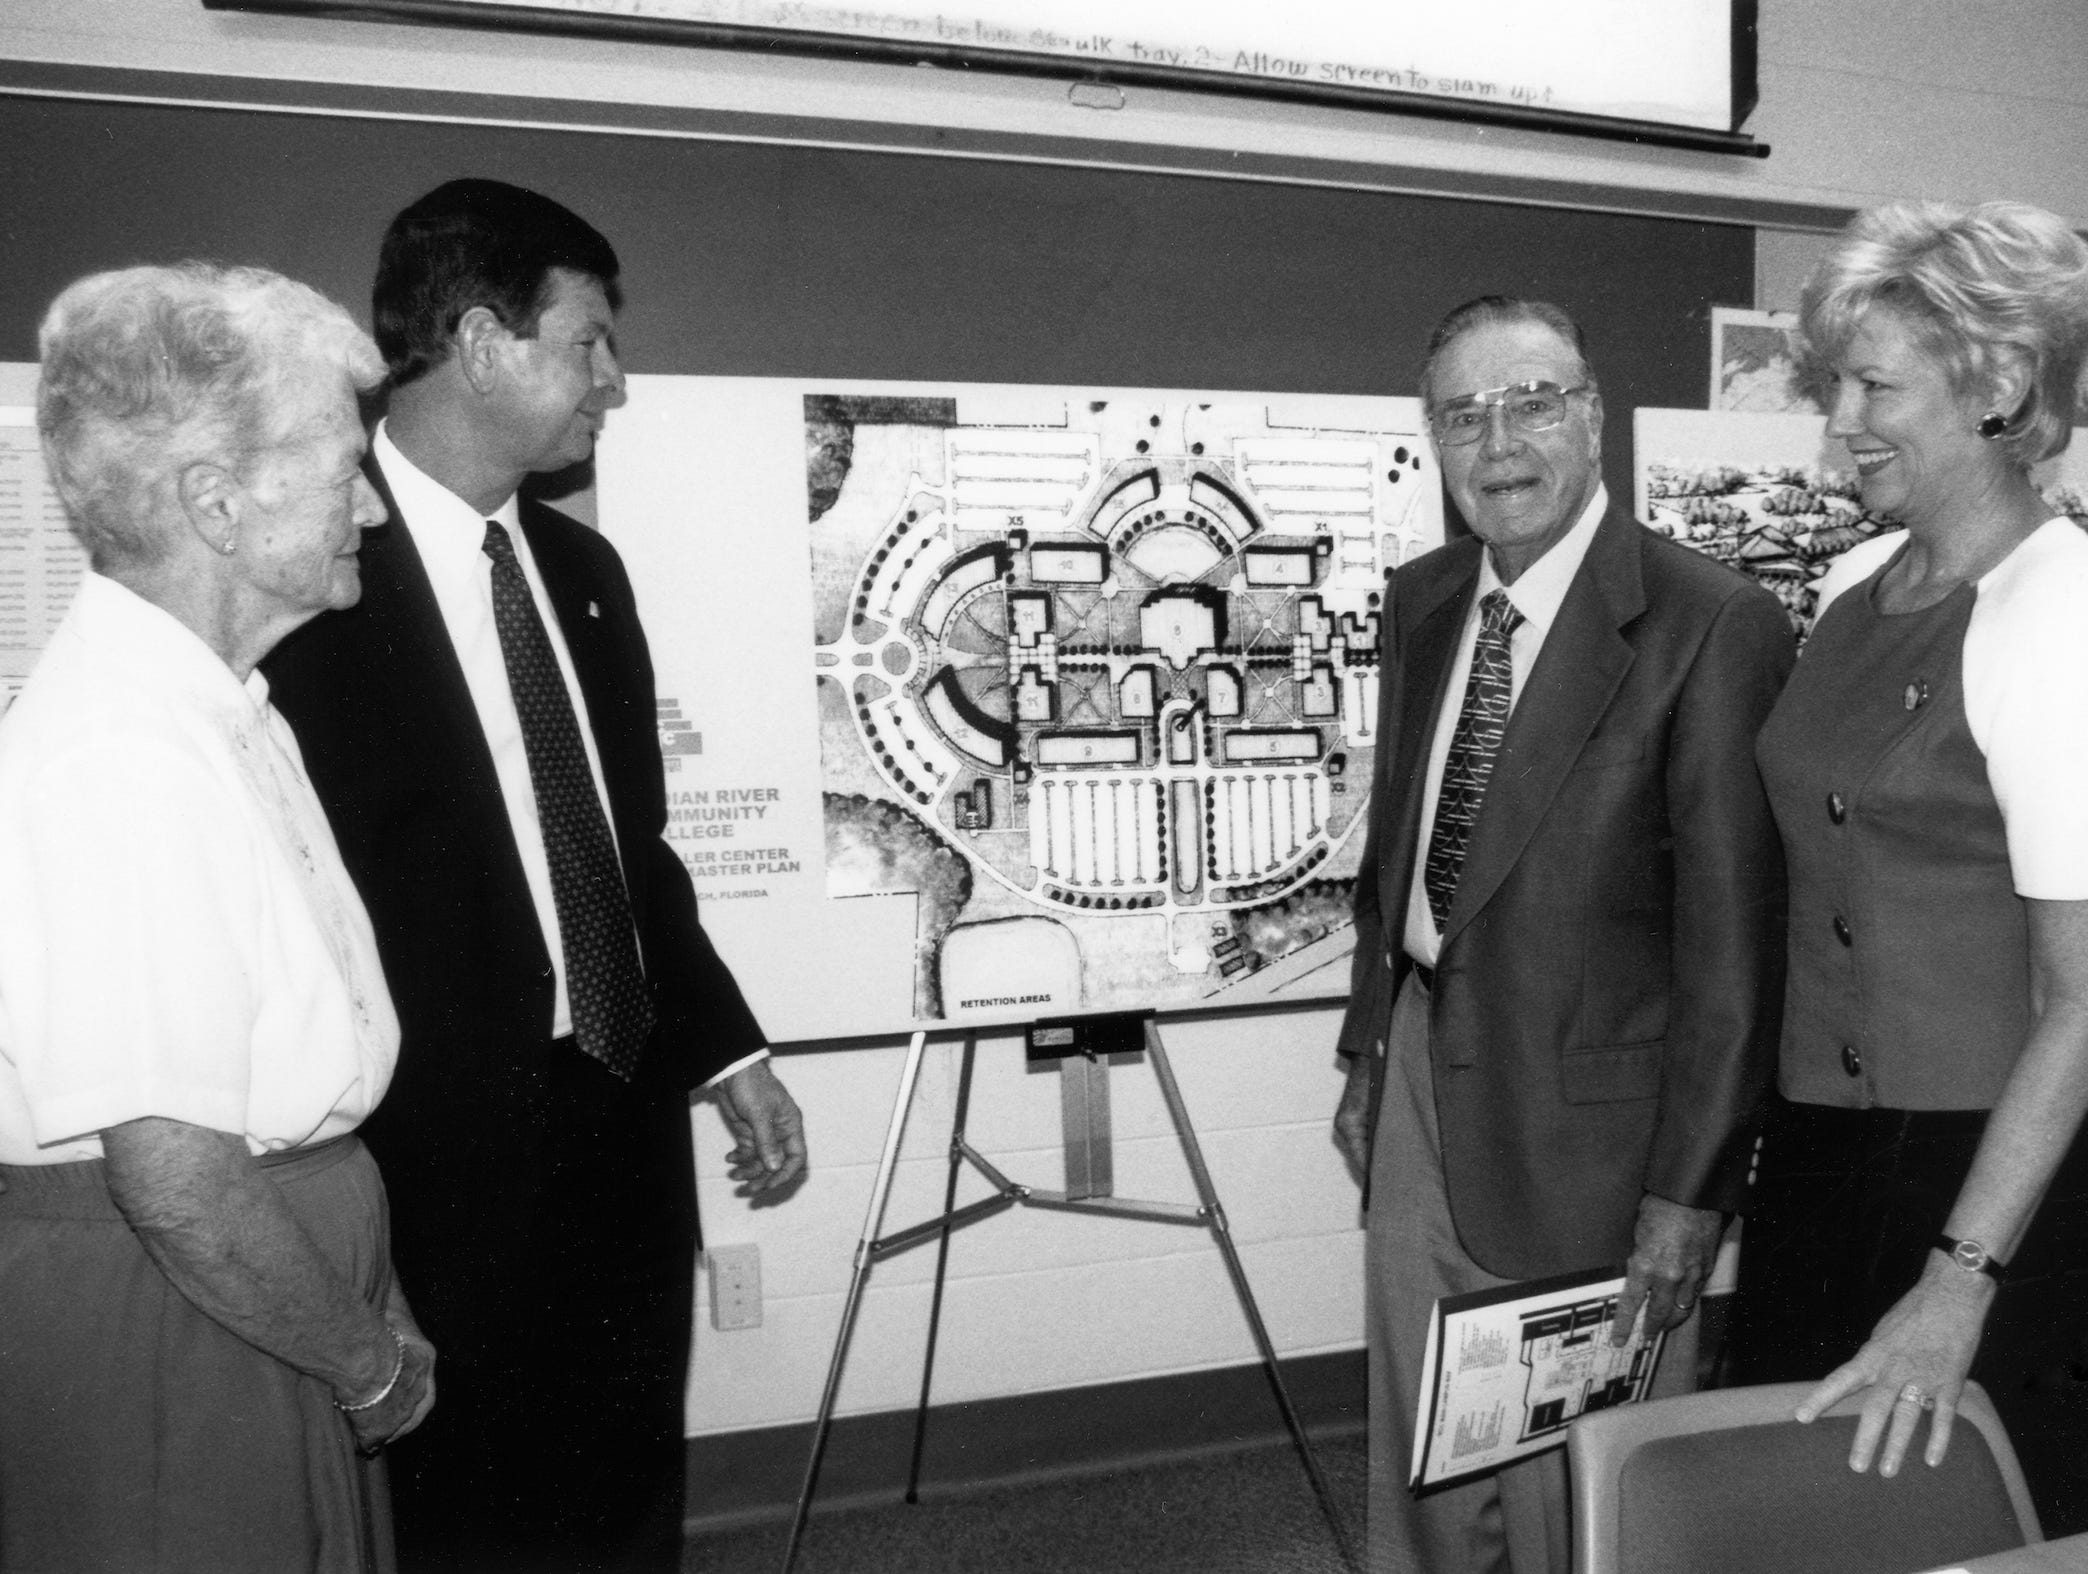 Marge Richardson, left, IRSC President Dr. Edwin Massey, Dan Richardson and Mary Graves, trustee with the District Board of Trustees, view the expansion plans for the Mueller Campus in Vero Beach. The effort to open a campus of Indian River State College in the Vero Beach area started when James and Valeda Mueller gave land for it and the Richardsons provided seed money to launch the project.